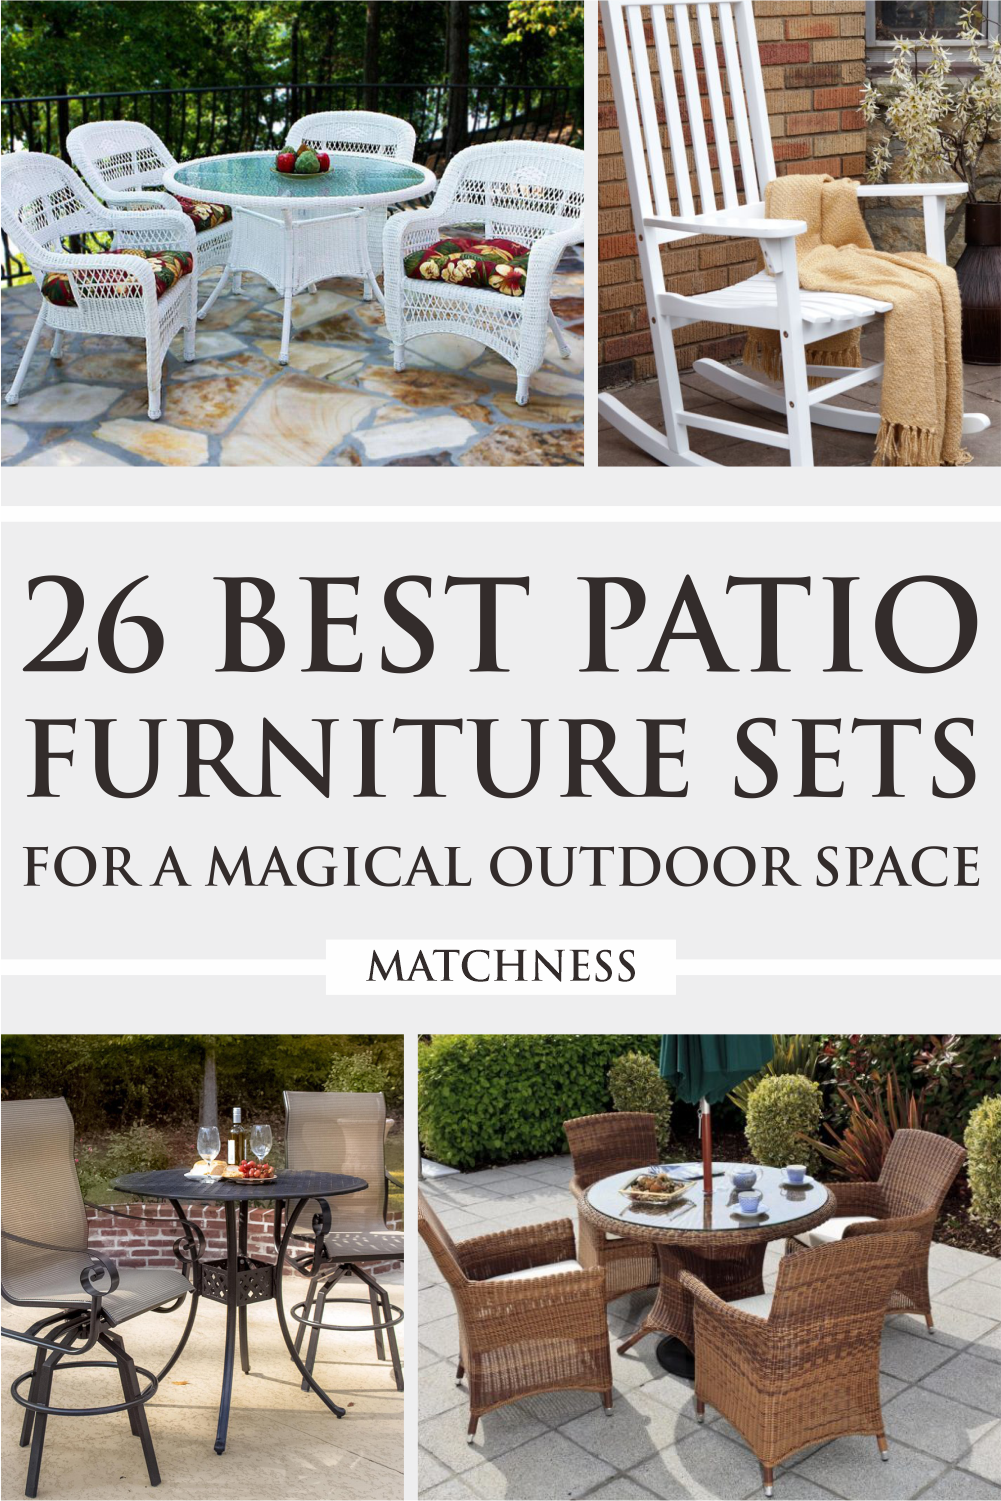 26 Best Patio Furniture Sets For A Magical Outdoor Space Matchness Com Patio Furniture Sets Classic Patio Furniture Wicker Dining Set